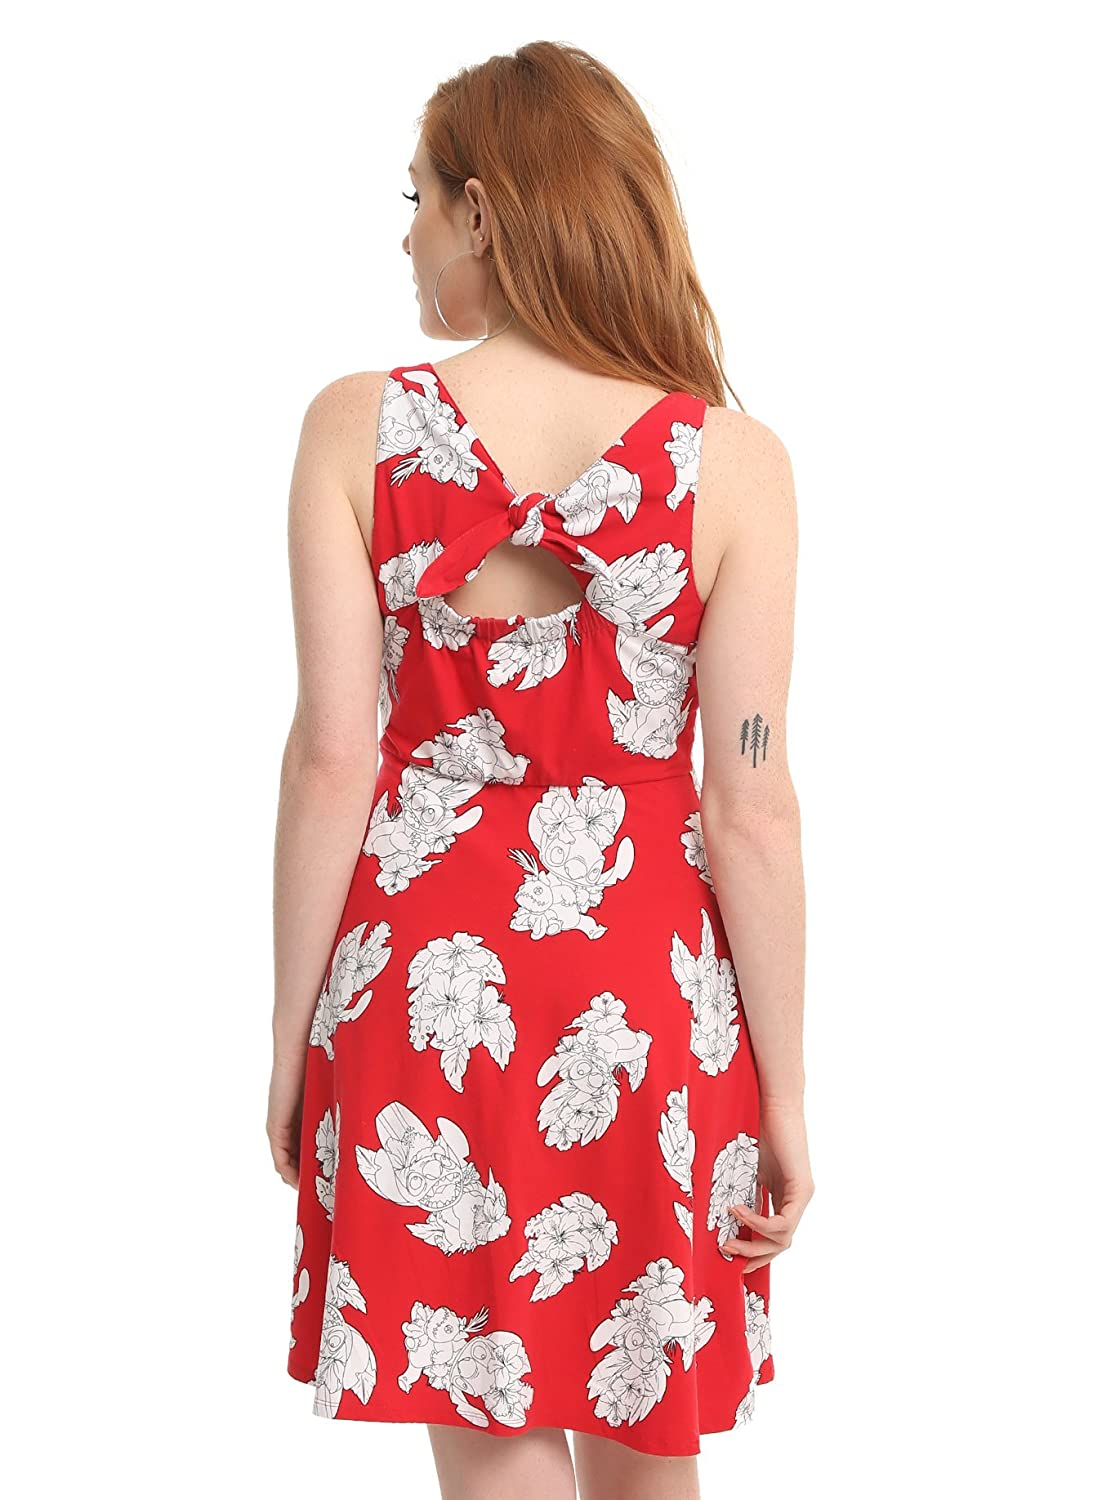 8b2f77e37f Lilo   Stitch Disney Lilo Dress Red White Floral Hawaiian Fit   Flare Style  at Amazon Women s Clothing store